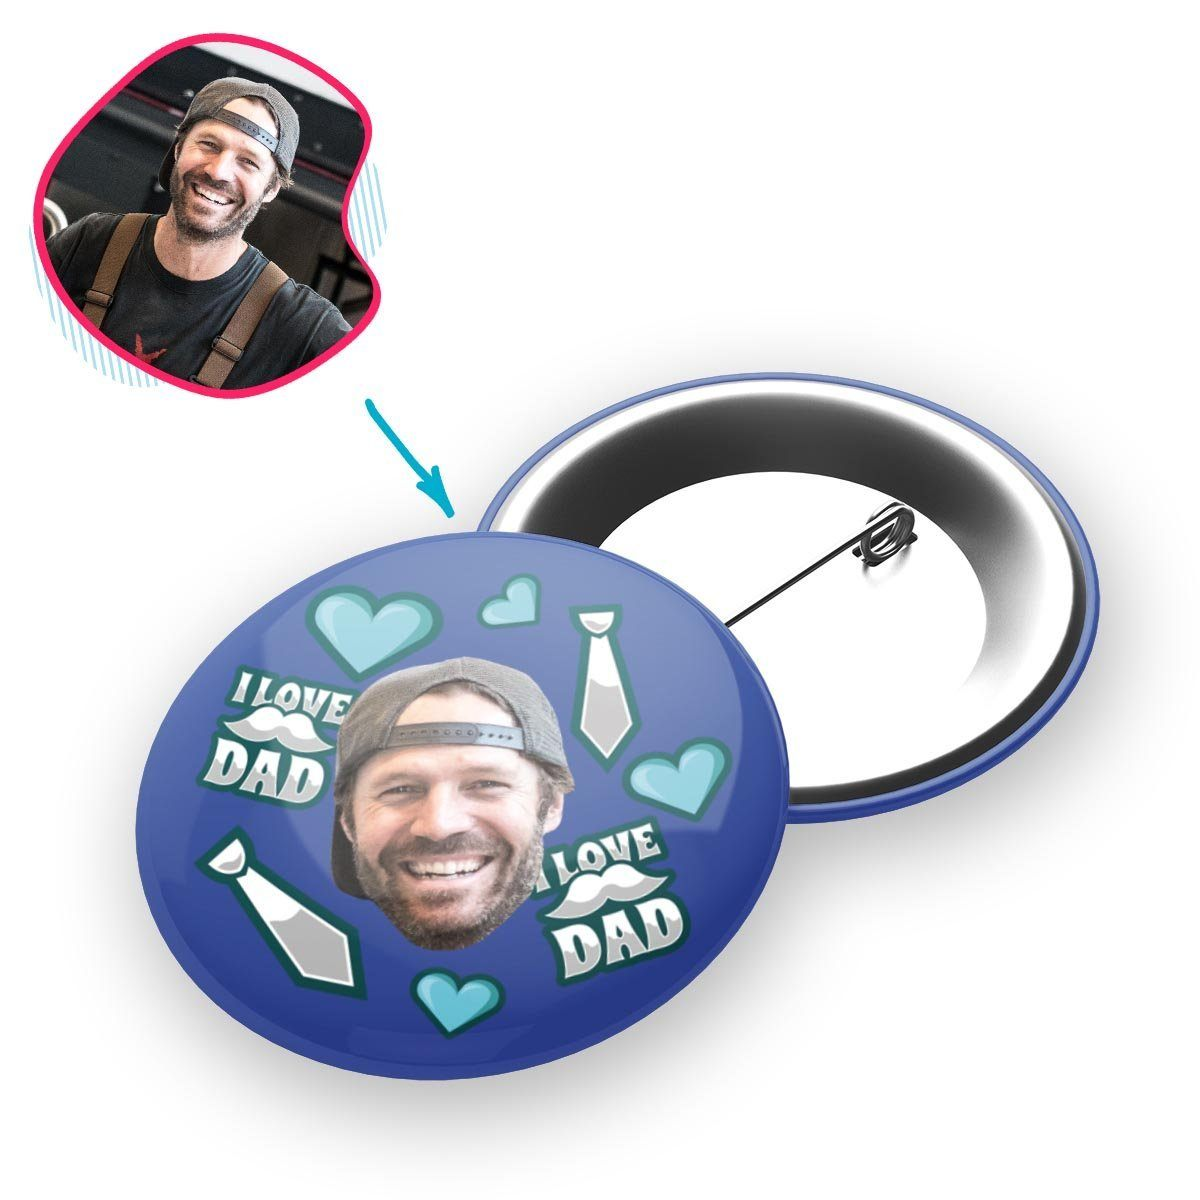 darkblue Love Dad pin personalized with photo of face printed on it